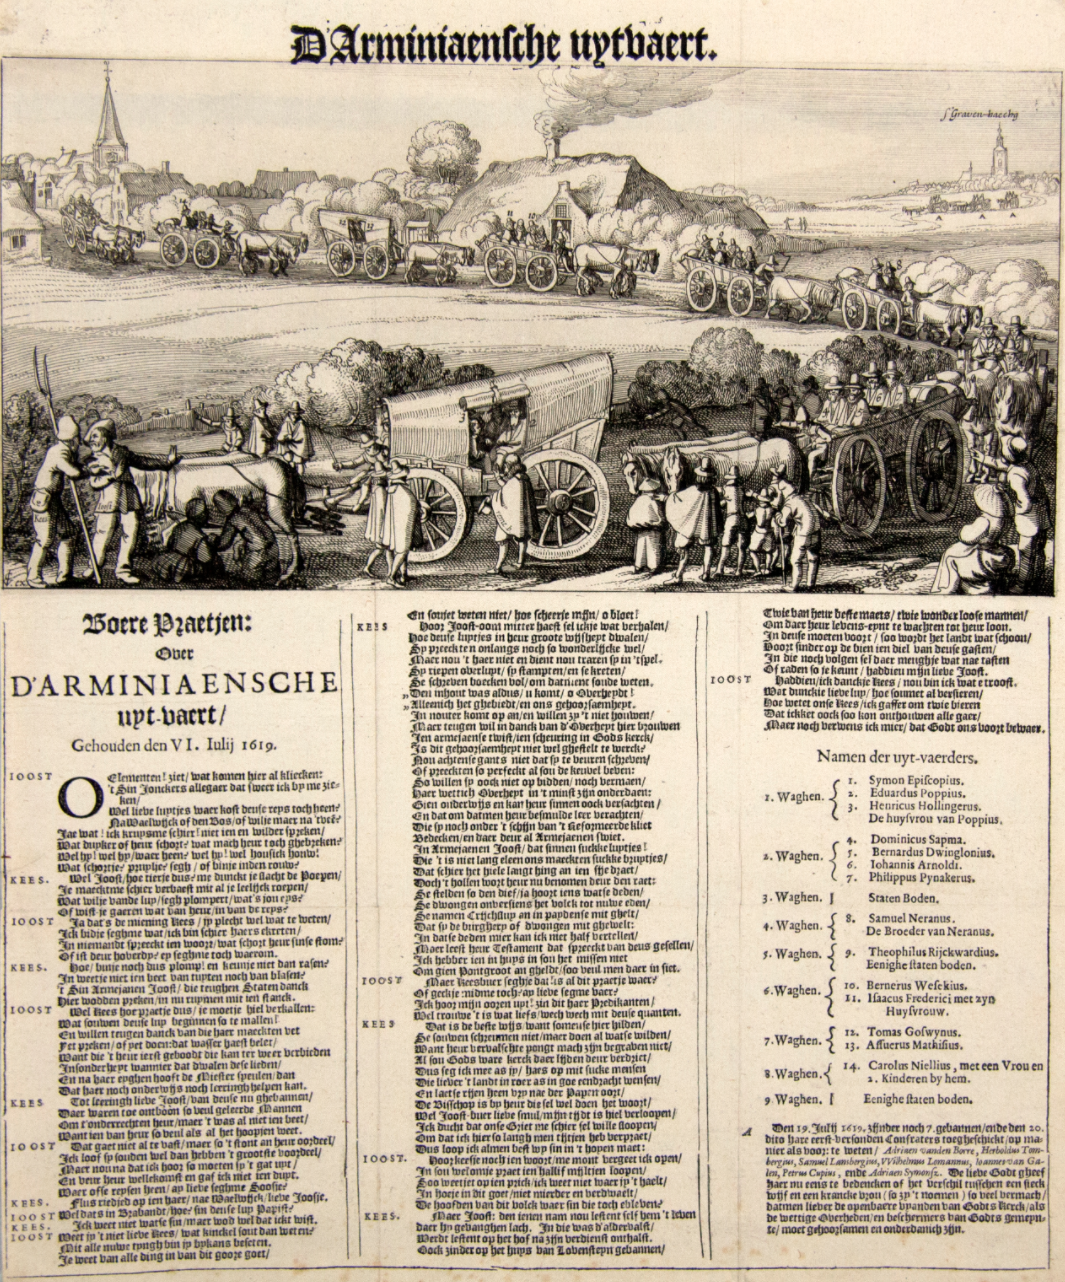 17th century broadside featuring a long line of migrants in matching clothing and hats loaded up in wagons snaked through the countryside. They are Dutch Remonstrants exiled for retaining their faith. Three dense columns of text are beneath the image.